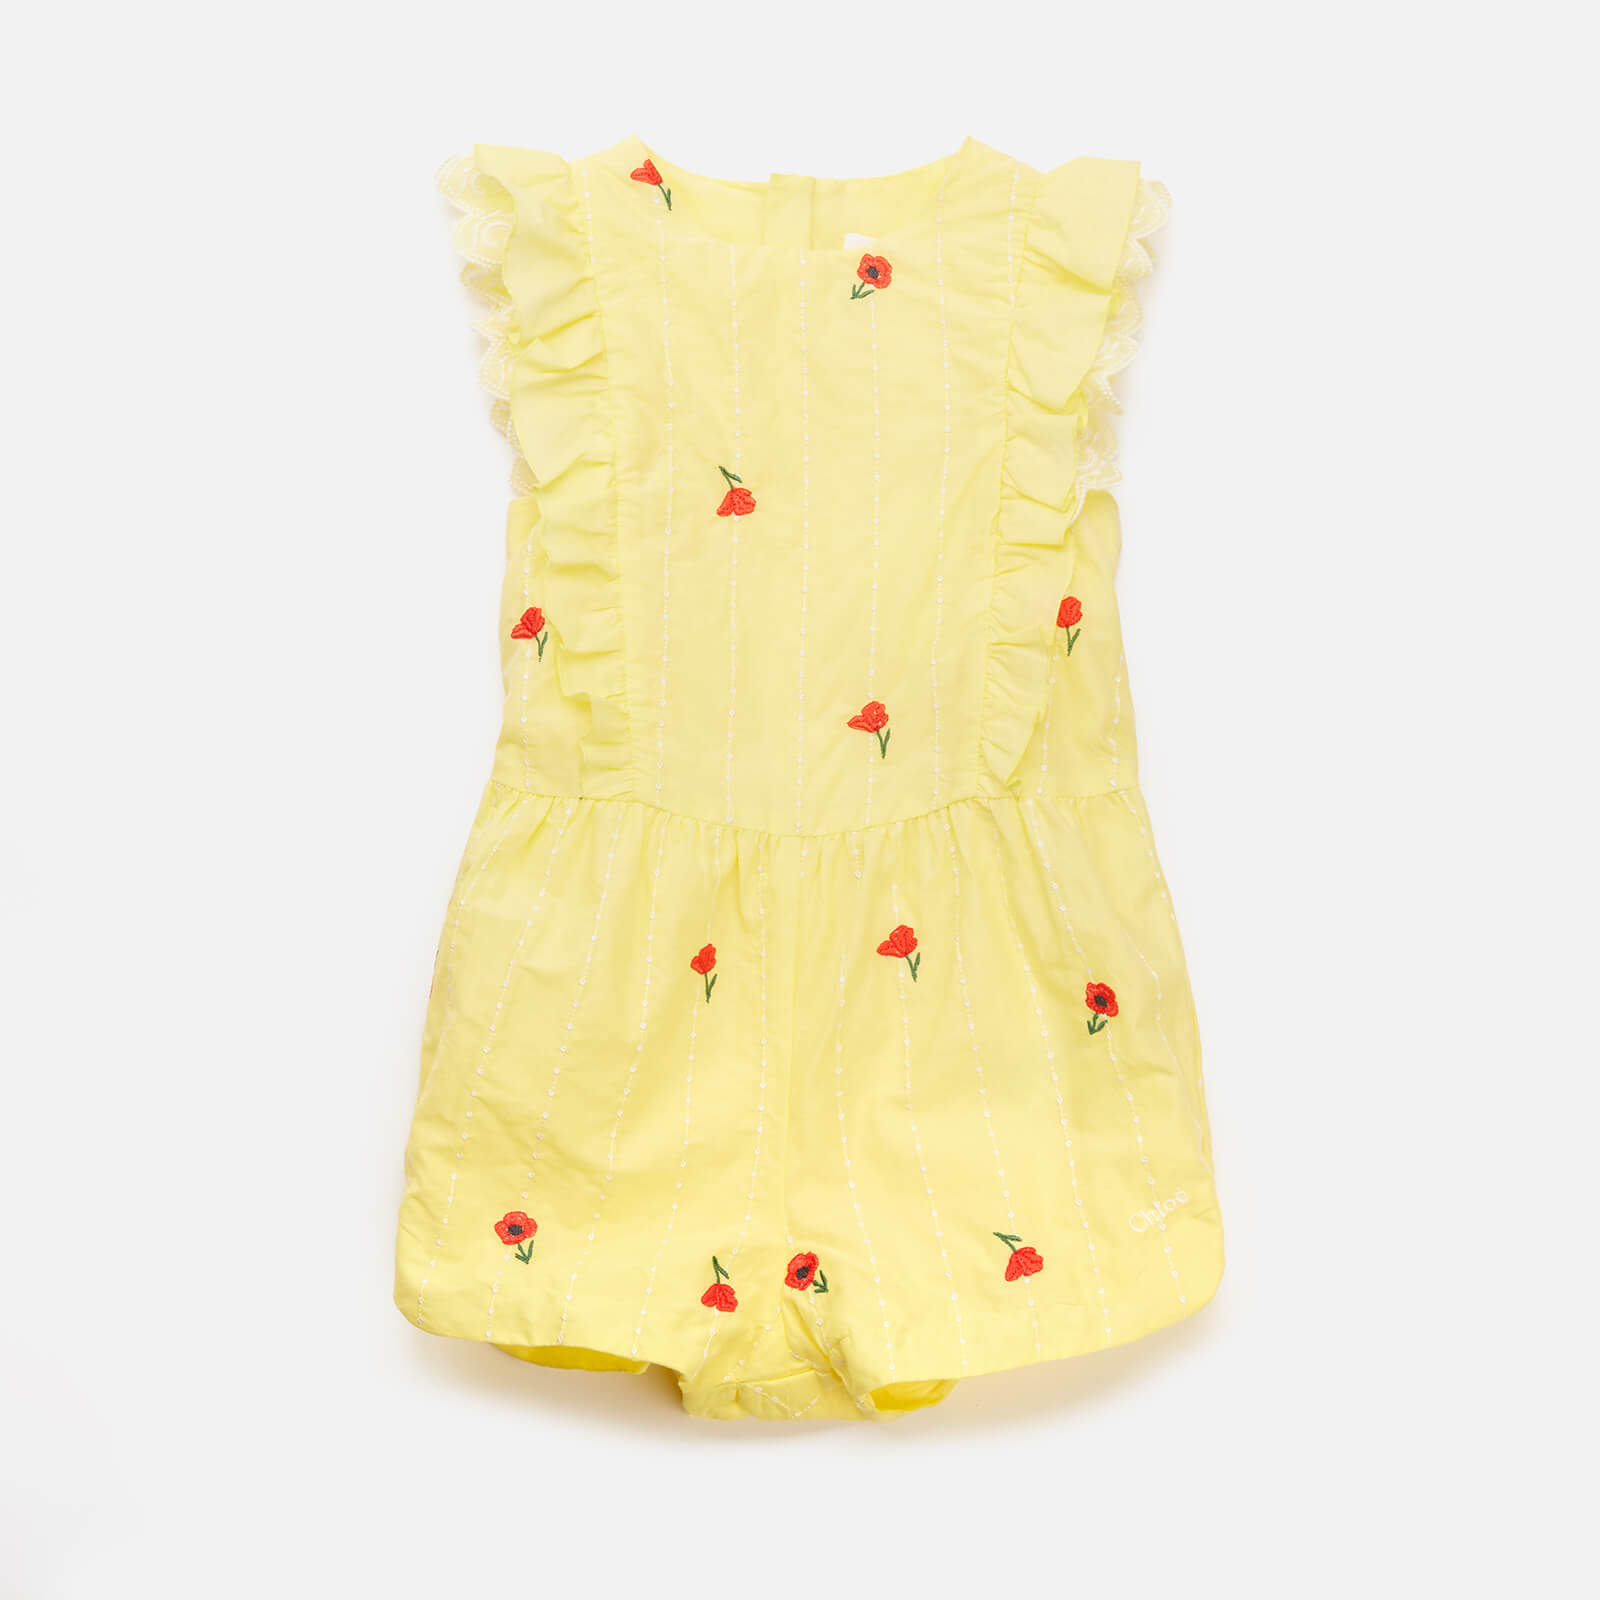 Chloe Girls' Toddlers All In One Romper - Lime - 2 Years